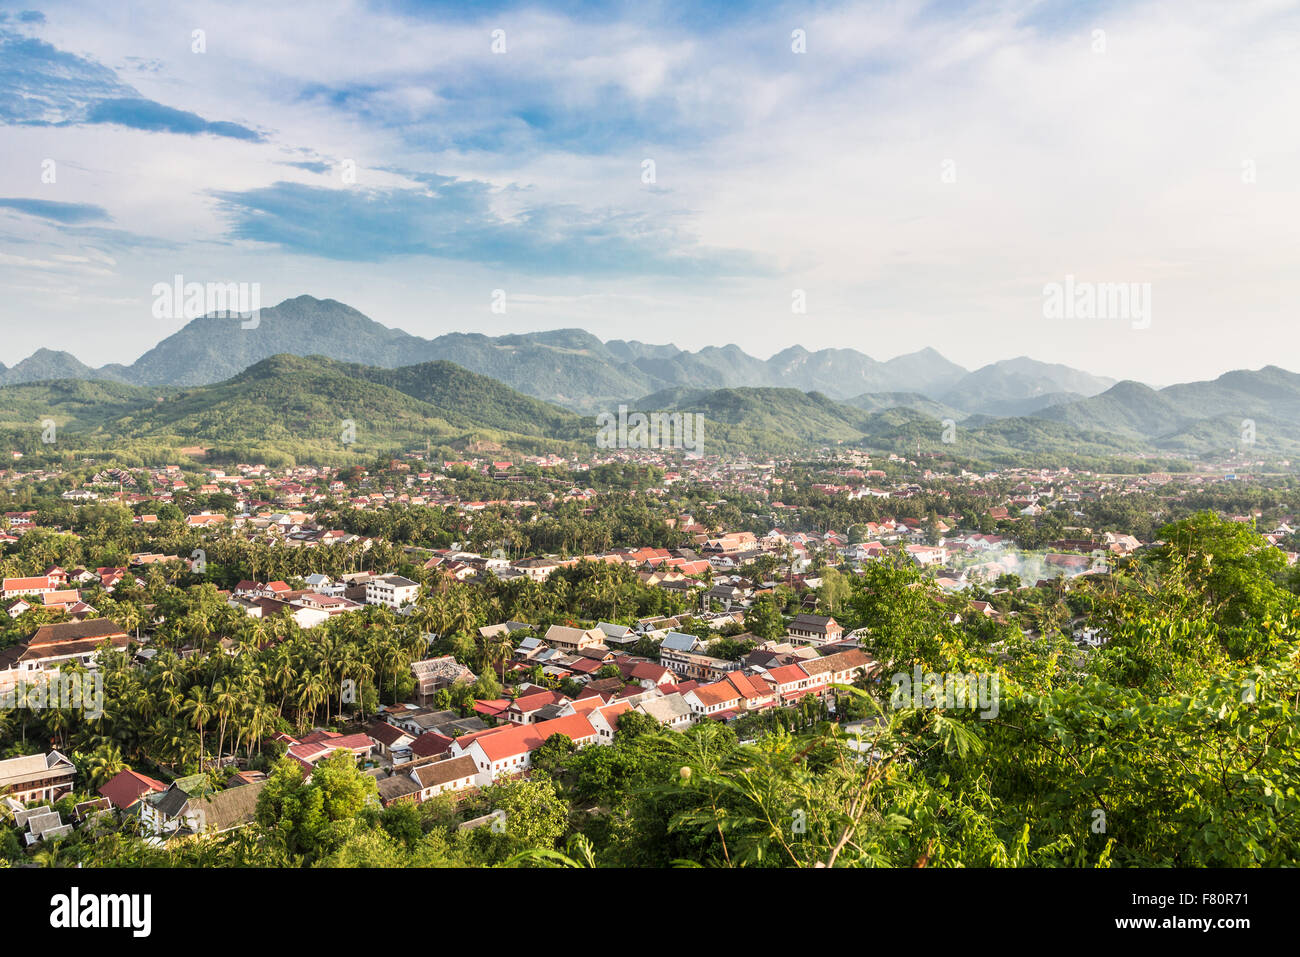 An aerial view of Luang Prabang in Laos. The city lies along the Mekong river and is one of the counrtry main travel - Stock Image